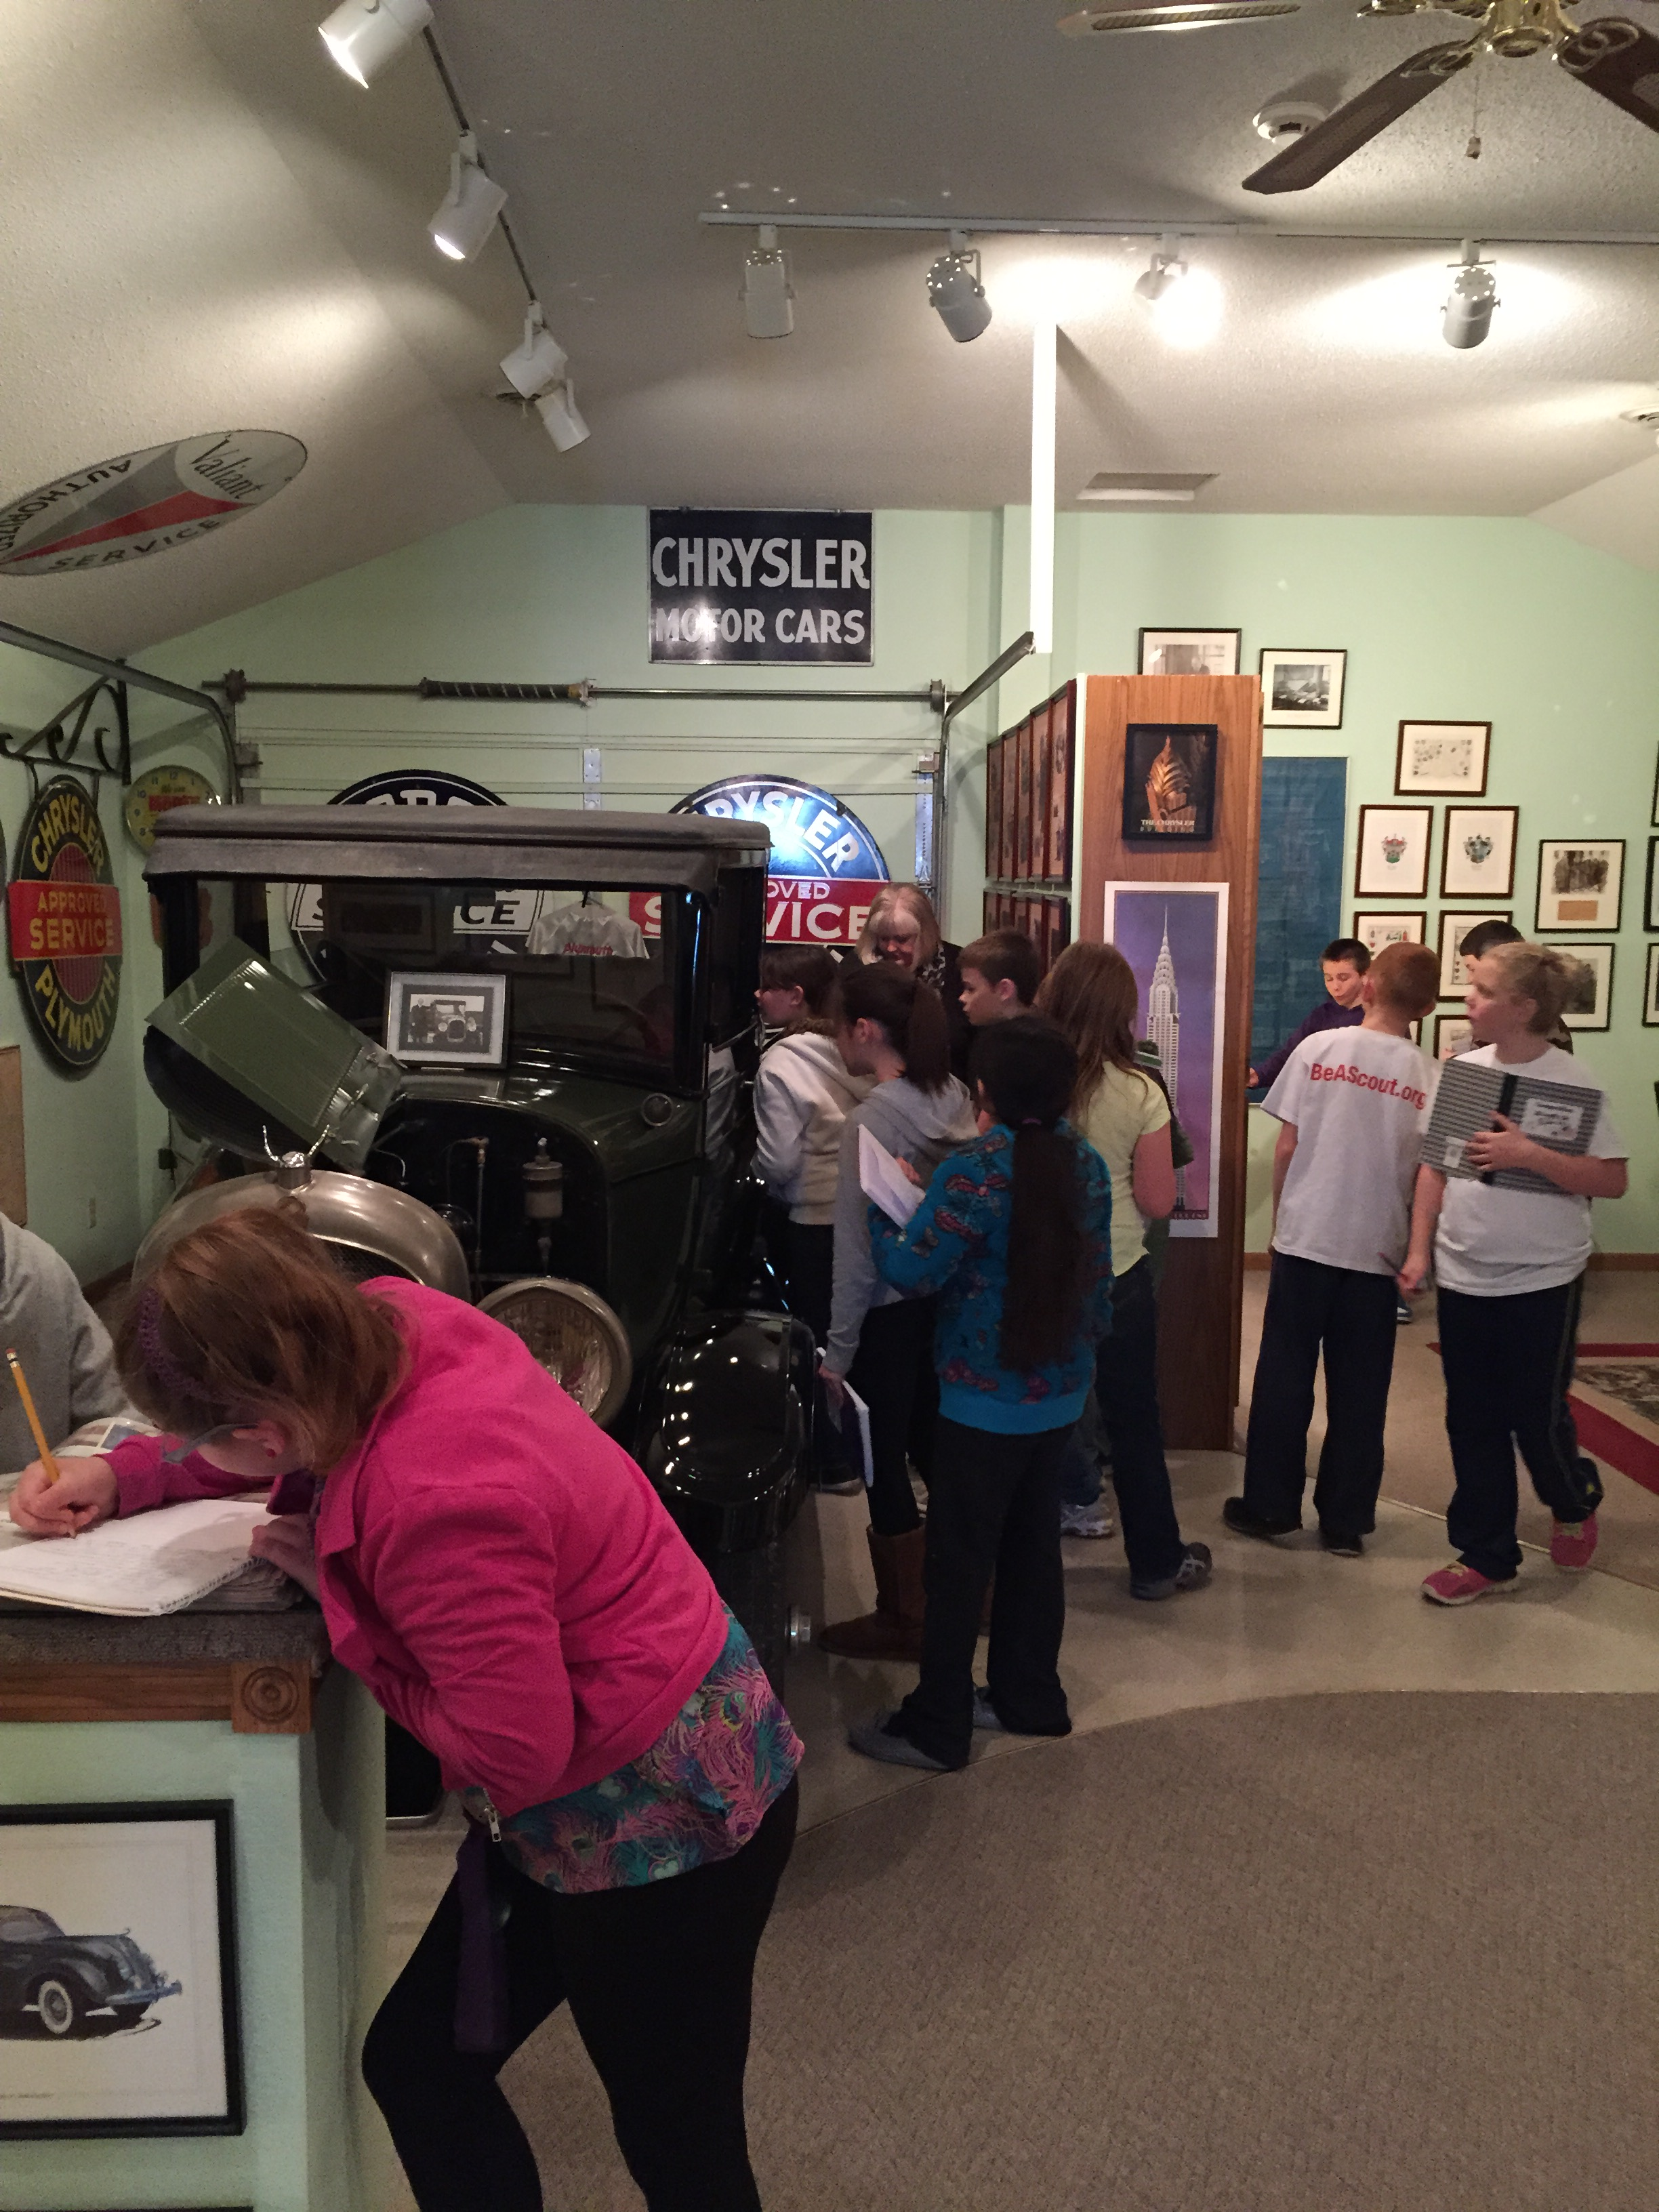 the kansas museum of history essay Page footer american museum of natural history central park west at 79th street new york, ny 10024-5192 phone: 212-769-5100 open daily from 10 am-5:45 pm except on thanksgiving and christmas.